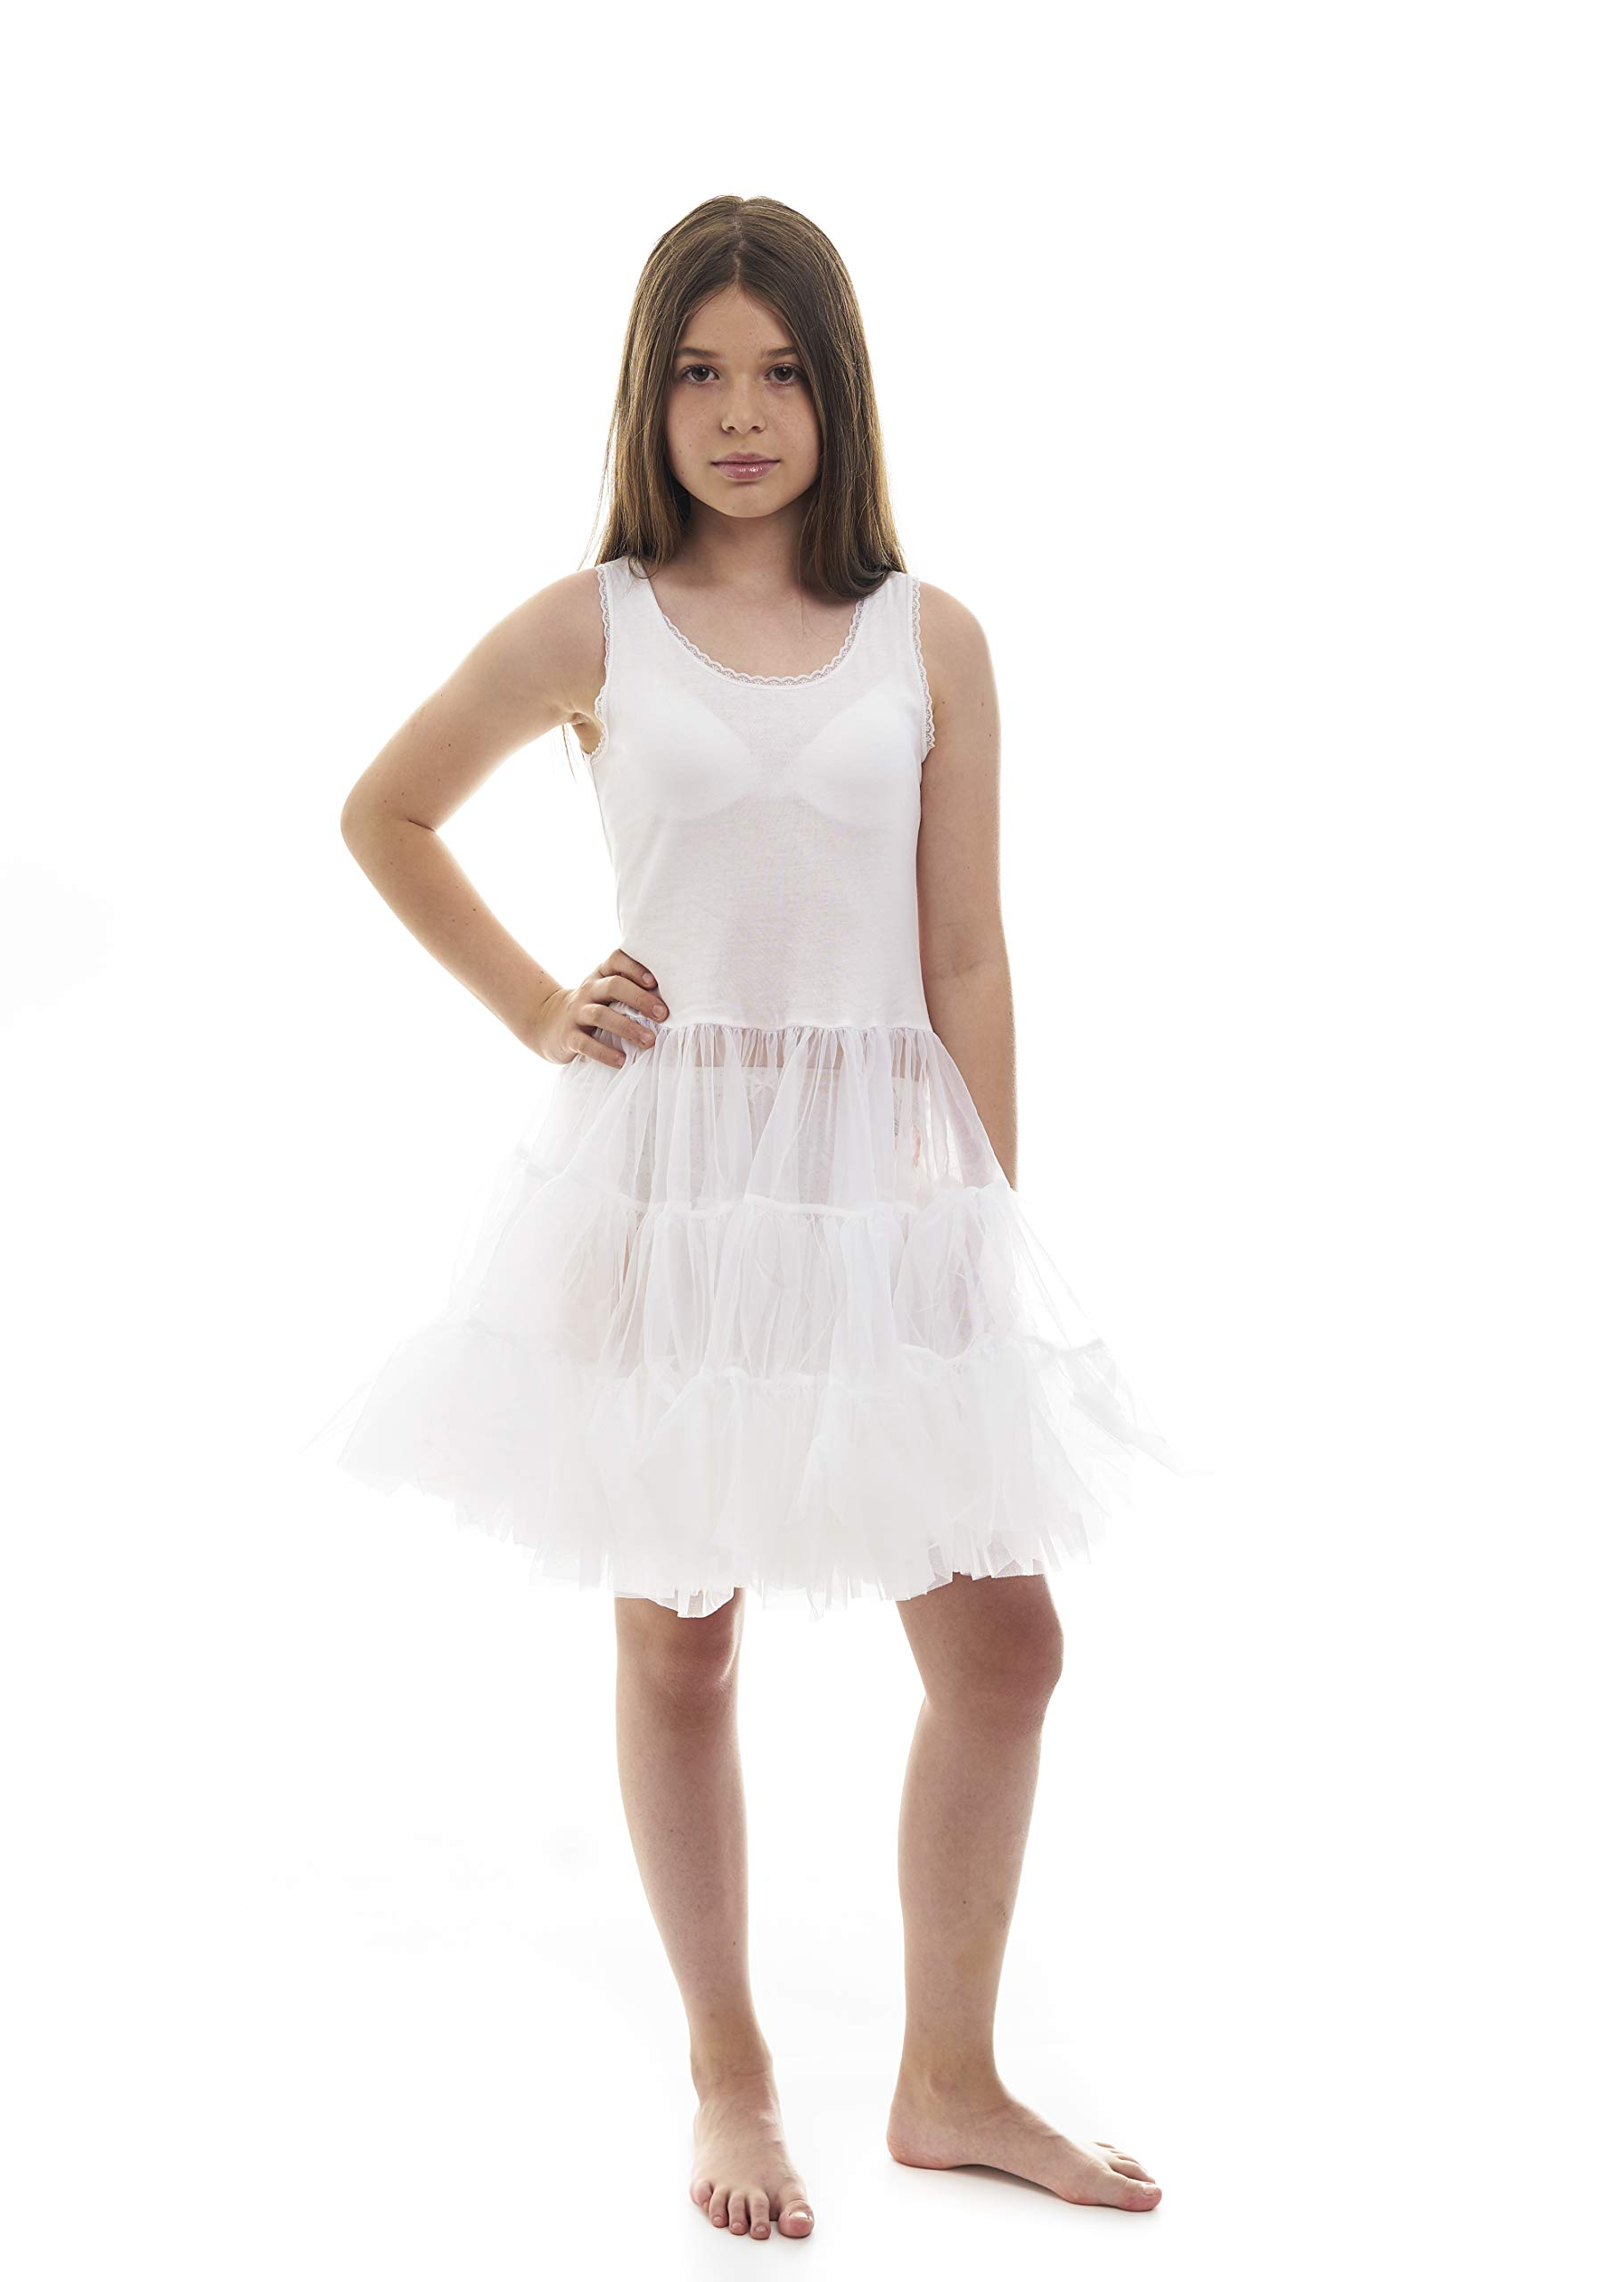 3bfd4f5b6a01 Amazon.com: Miss Model Candyland Petticoat Dress for Girls - Underdress and  Kids White full Slip Poodle Skirt Perfect for Formal Dress: Clothing